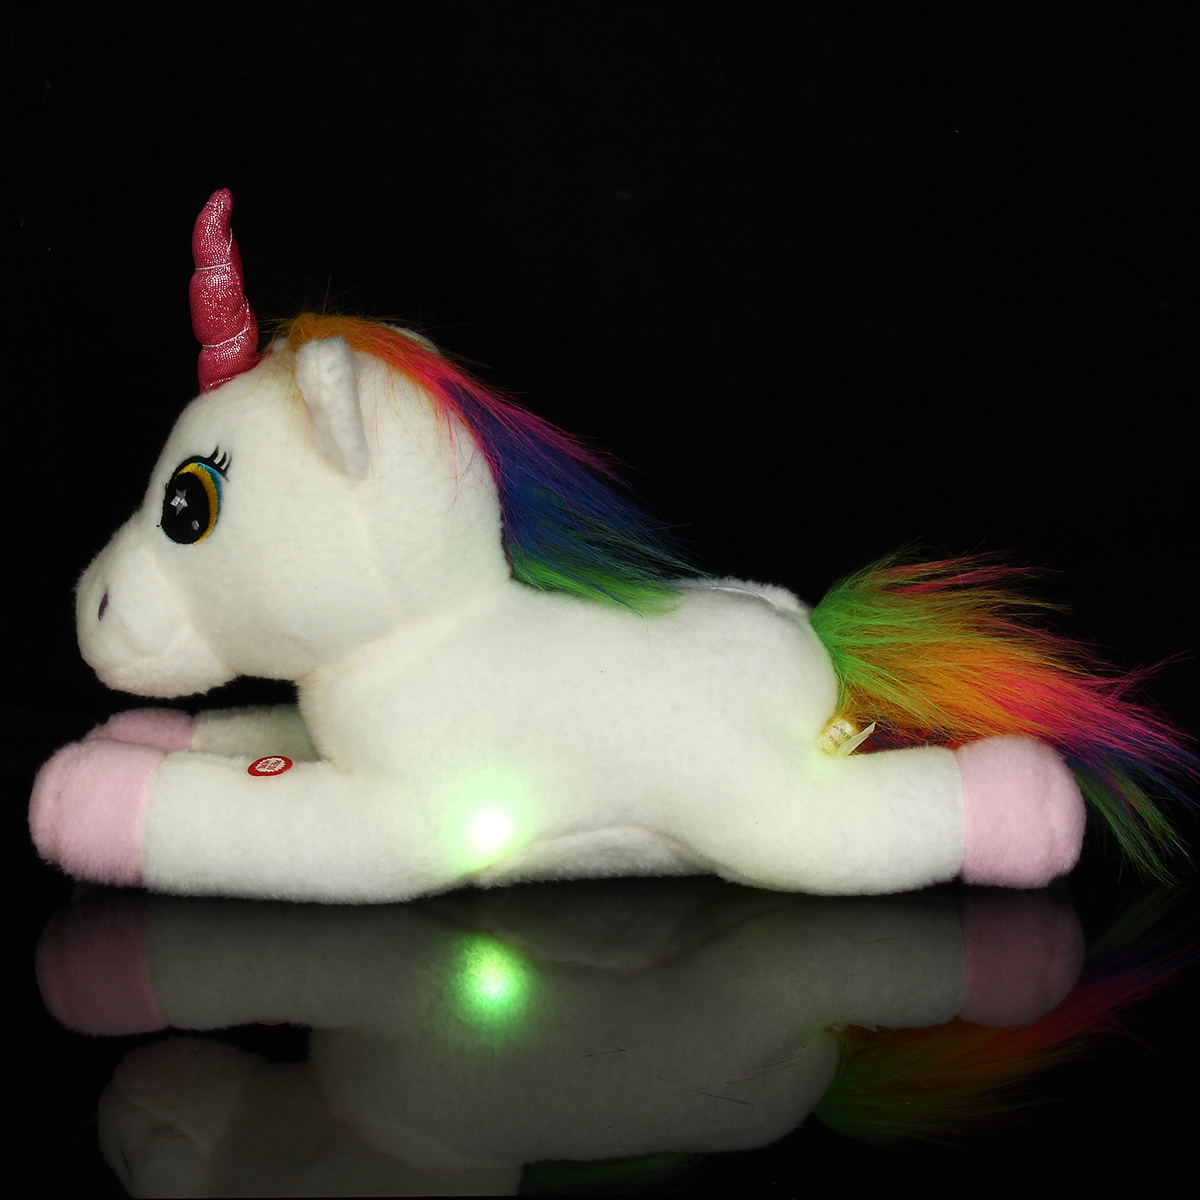 40cm Big LED Light Up Cute Unicorn Stuffed Animals Plush Doll Soft Toys Gifts